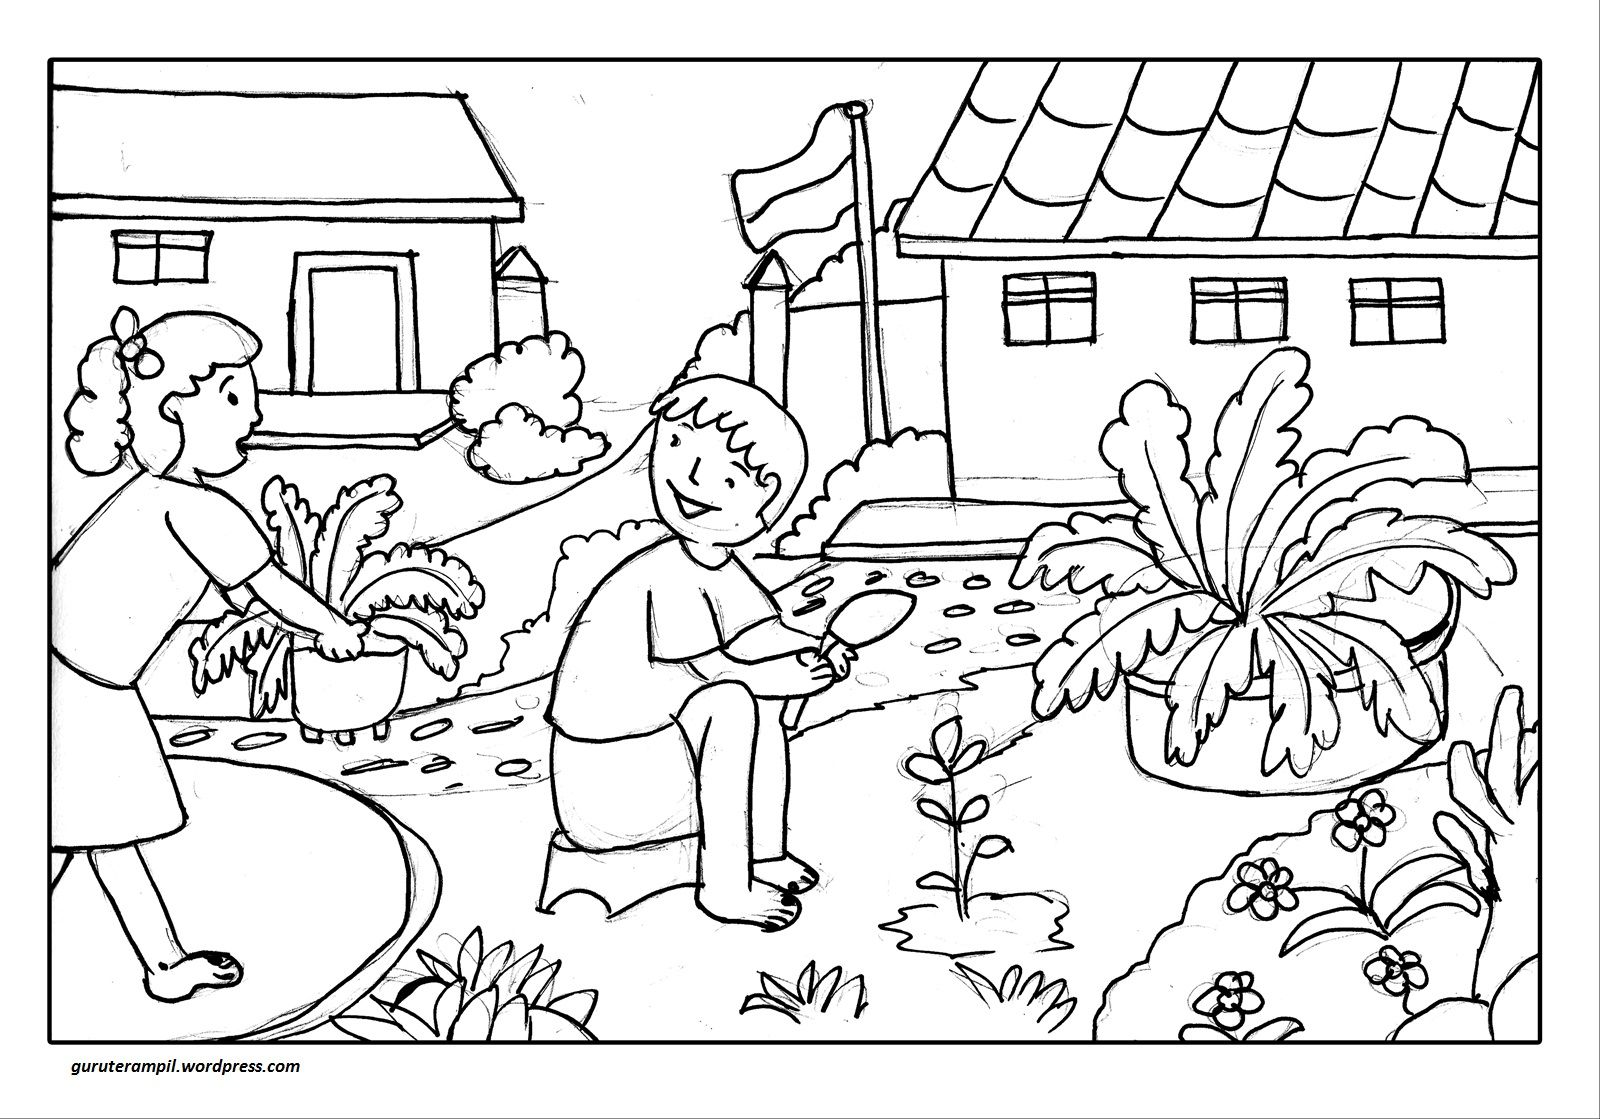 Explore Coloring Pages For Kids Pencil Drawings and more